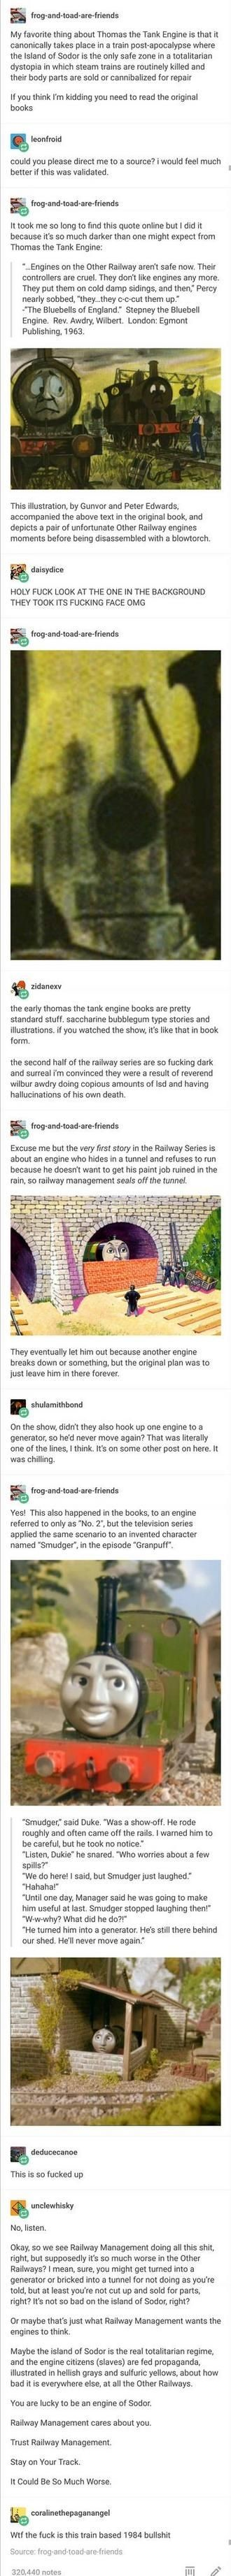 The Dark Side of Thomas the Tank Engine. . My favorite thing about Thomas the Tank Engine is that it canonically takes place in a train idiotapocalypse where th